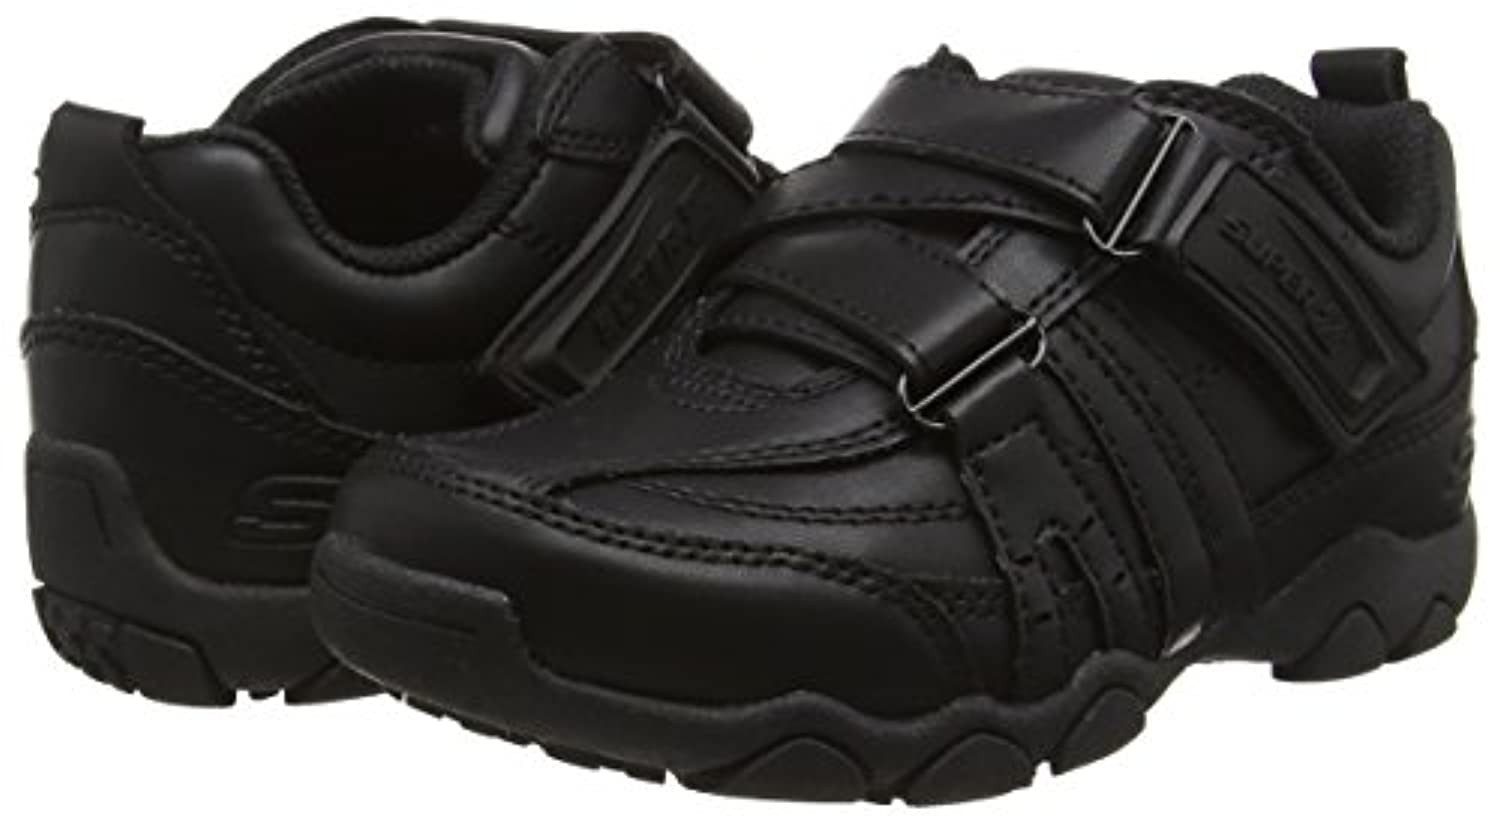 Skechers Diameter - Landon, Boys' Low-Top Sneakers, Black (Bbk), 1 UK